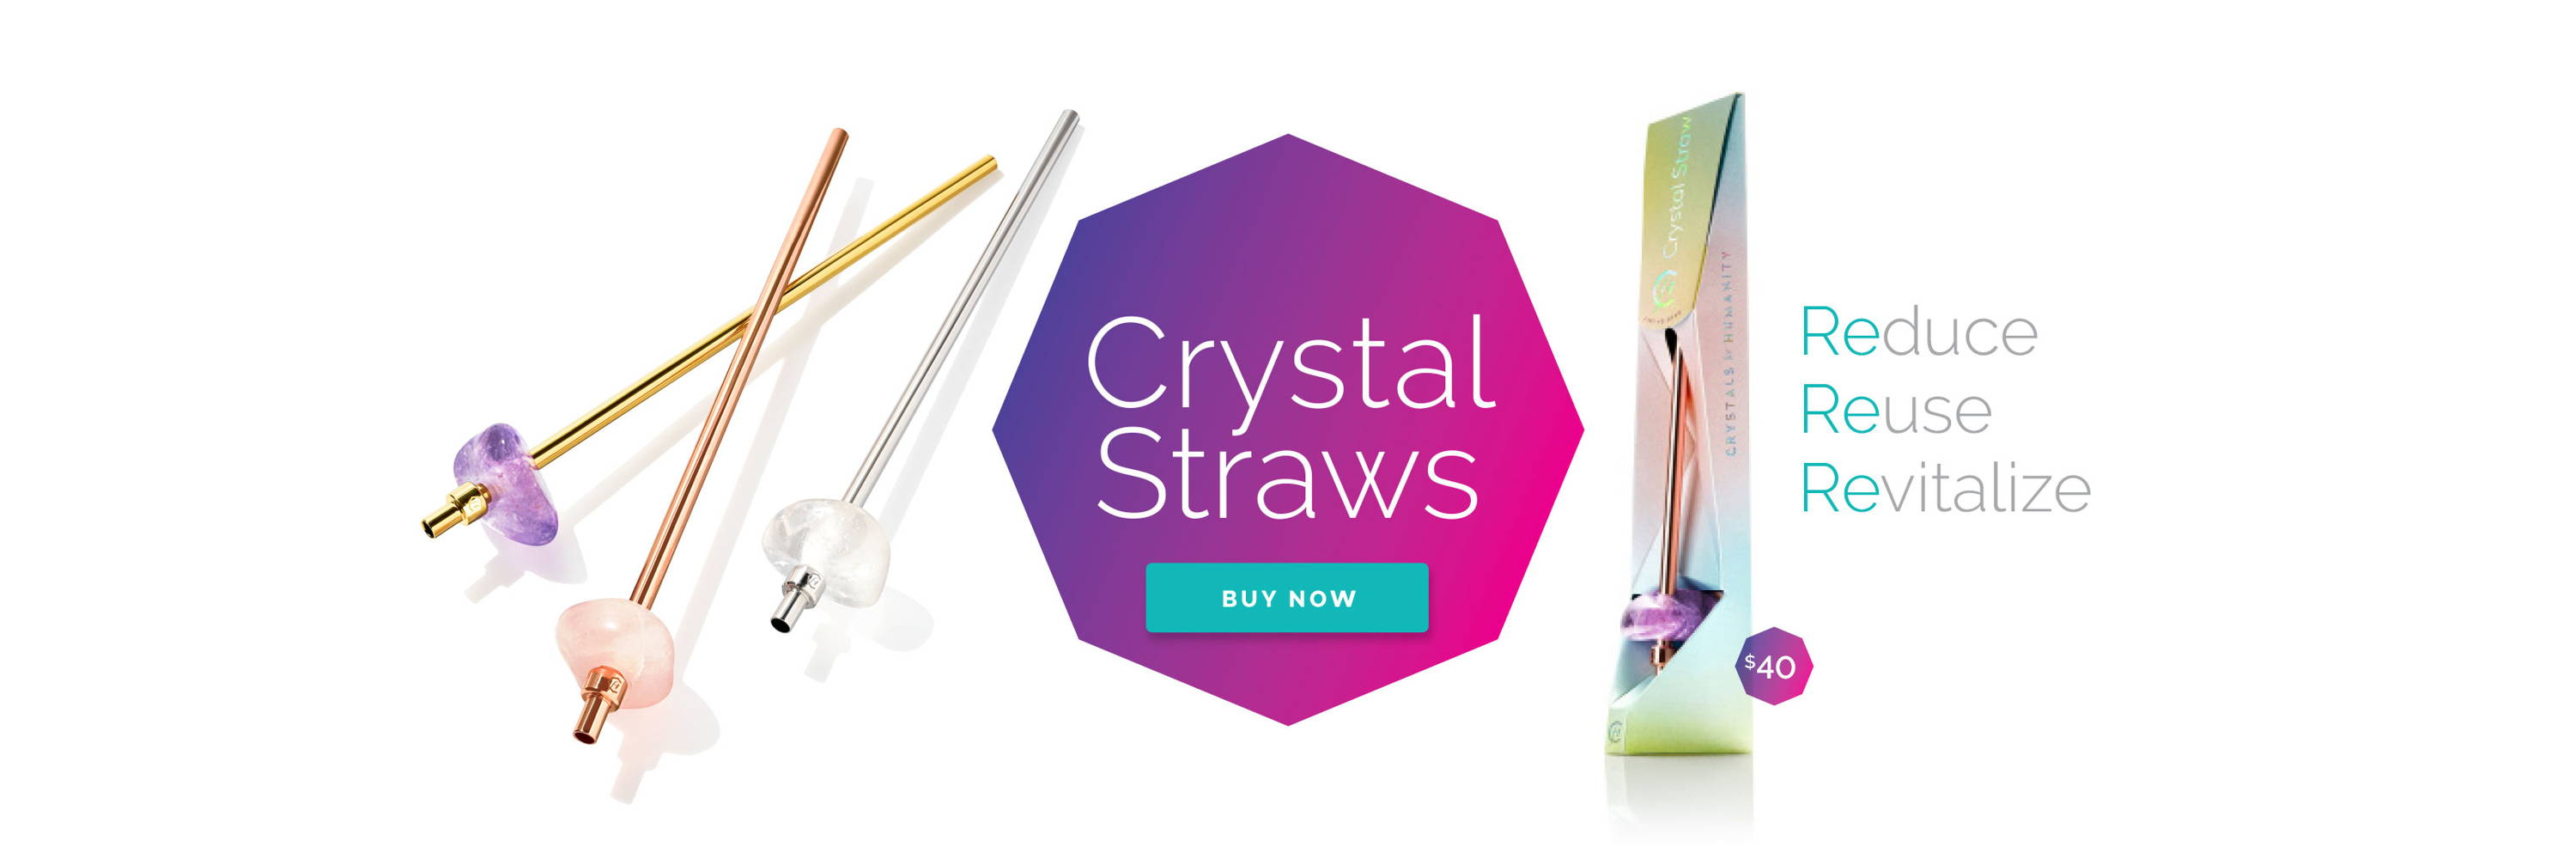 Reusable Crystal Straws by Crystals for Humanity